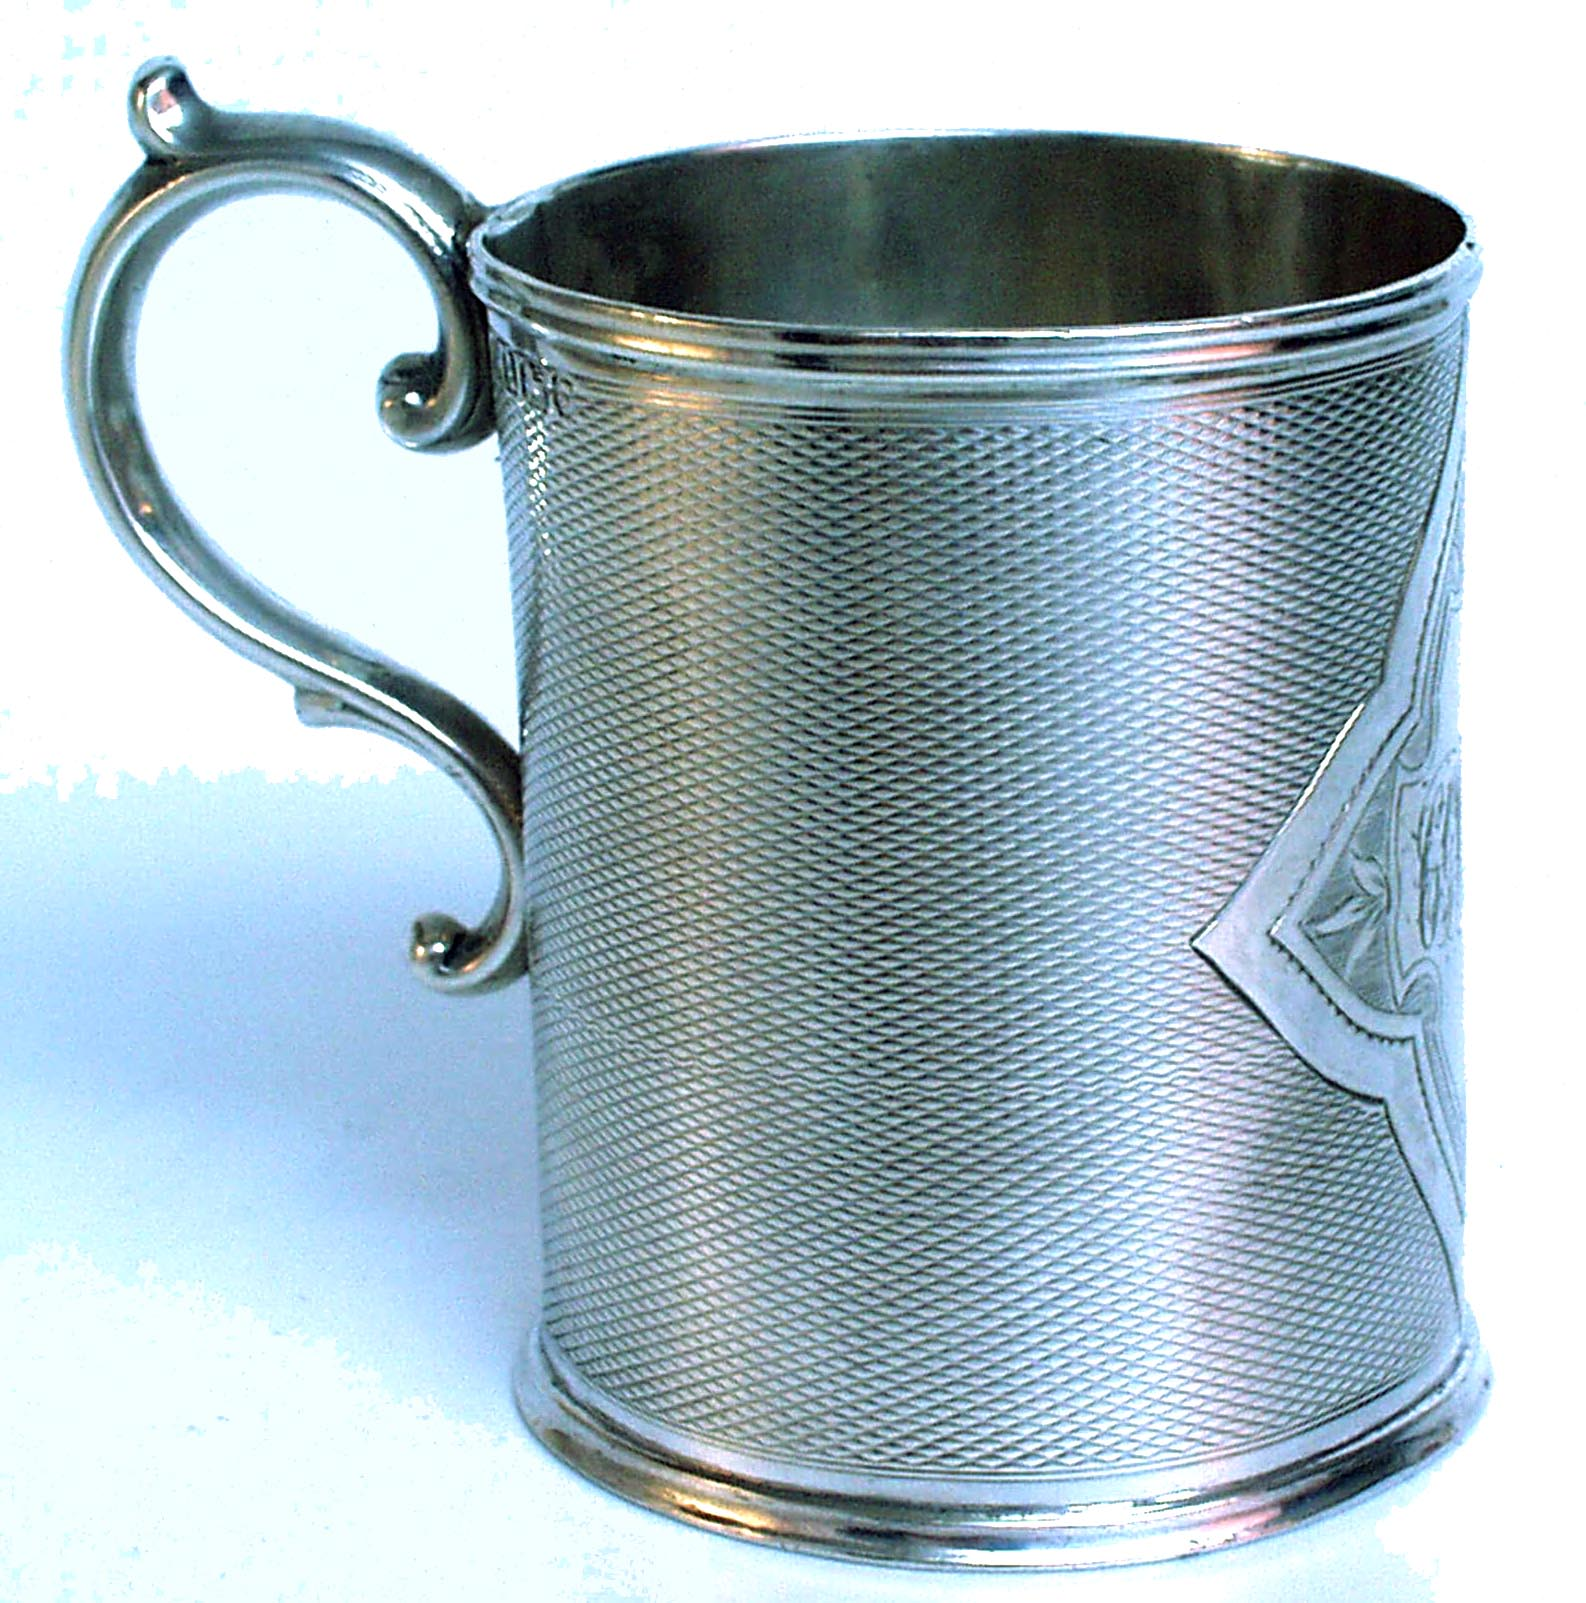 Victorian Silver Christening Mug 1844 - click to enlarge.